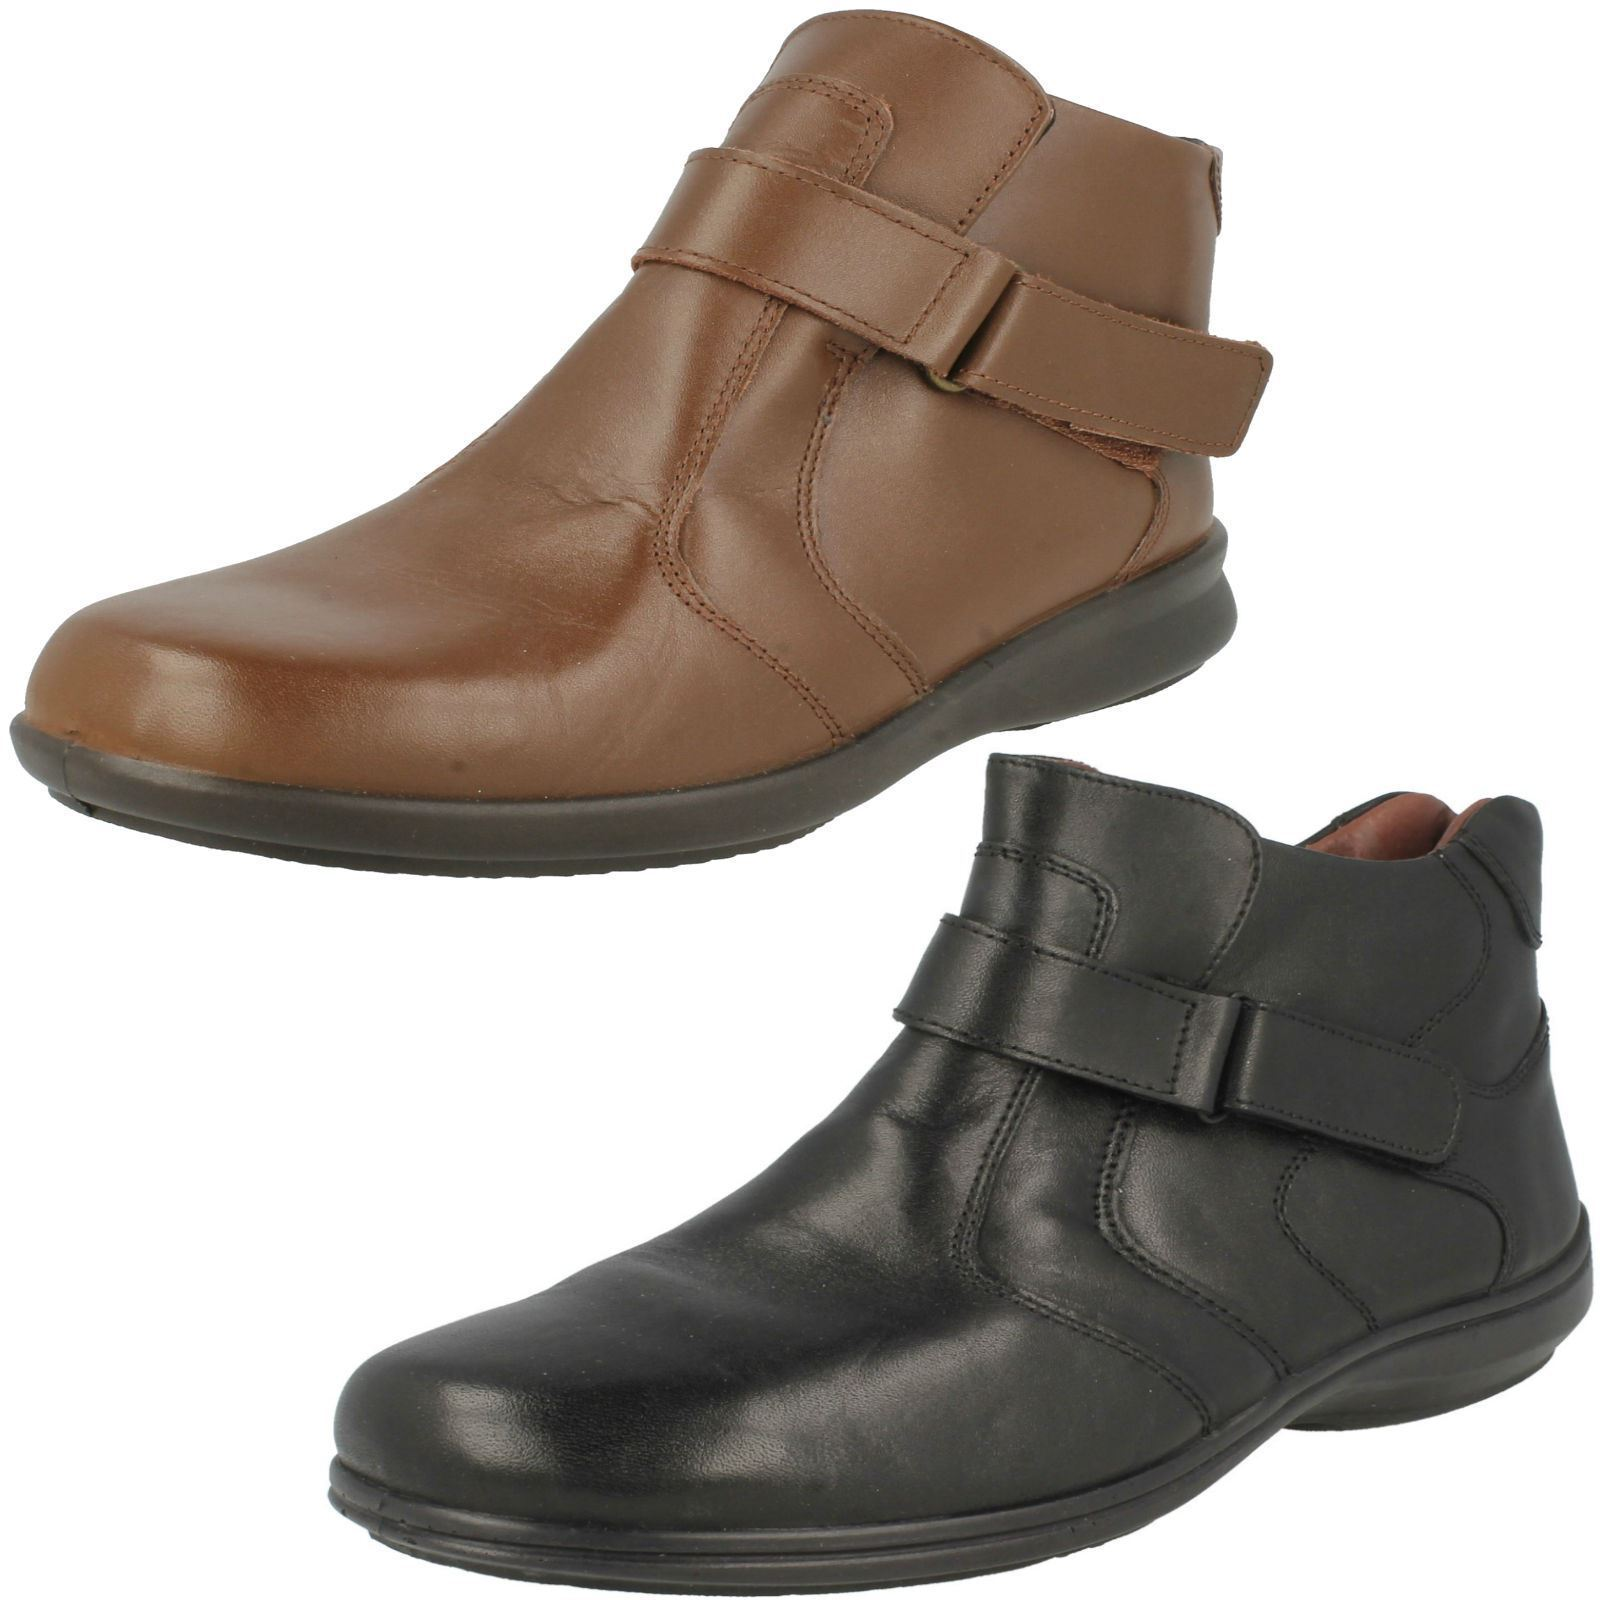 Ladies Easy B Strap Ankle Boots 'Truro'